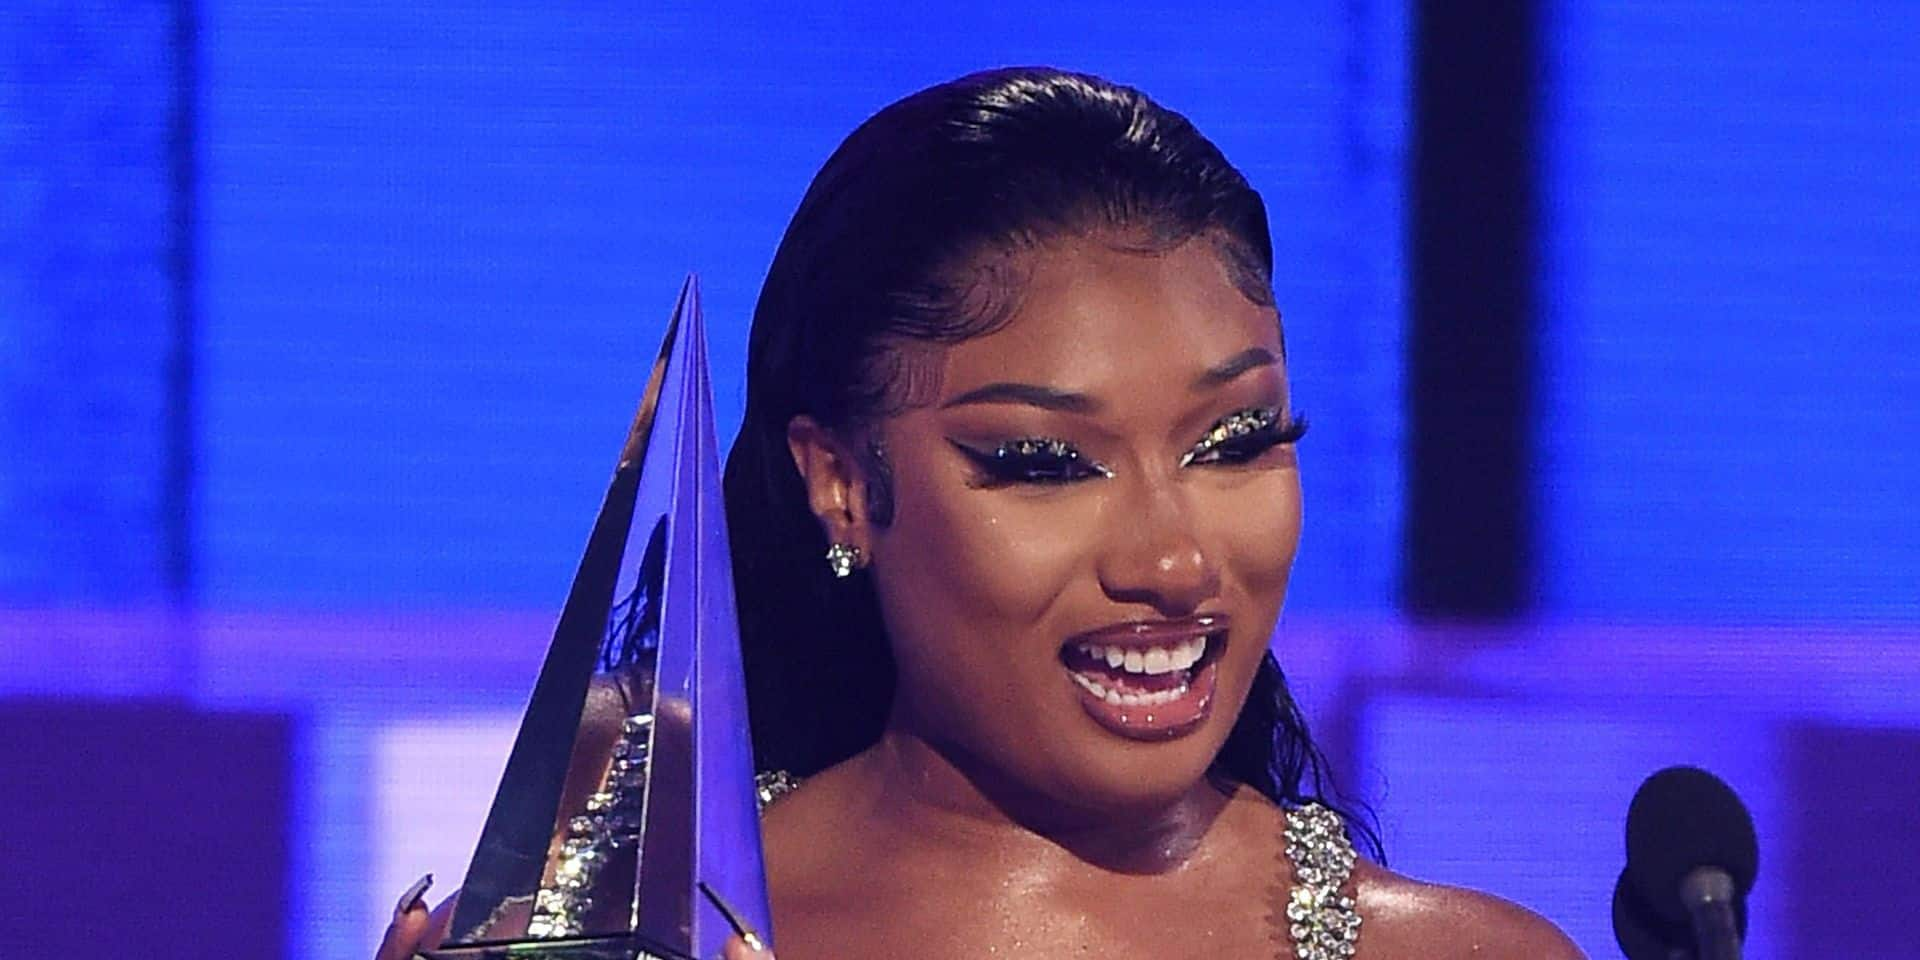 The 2020 American Music Awards